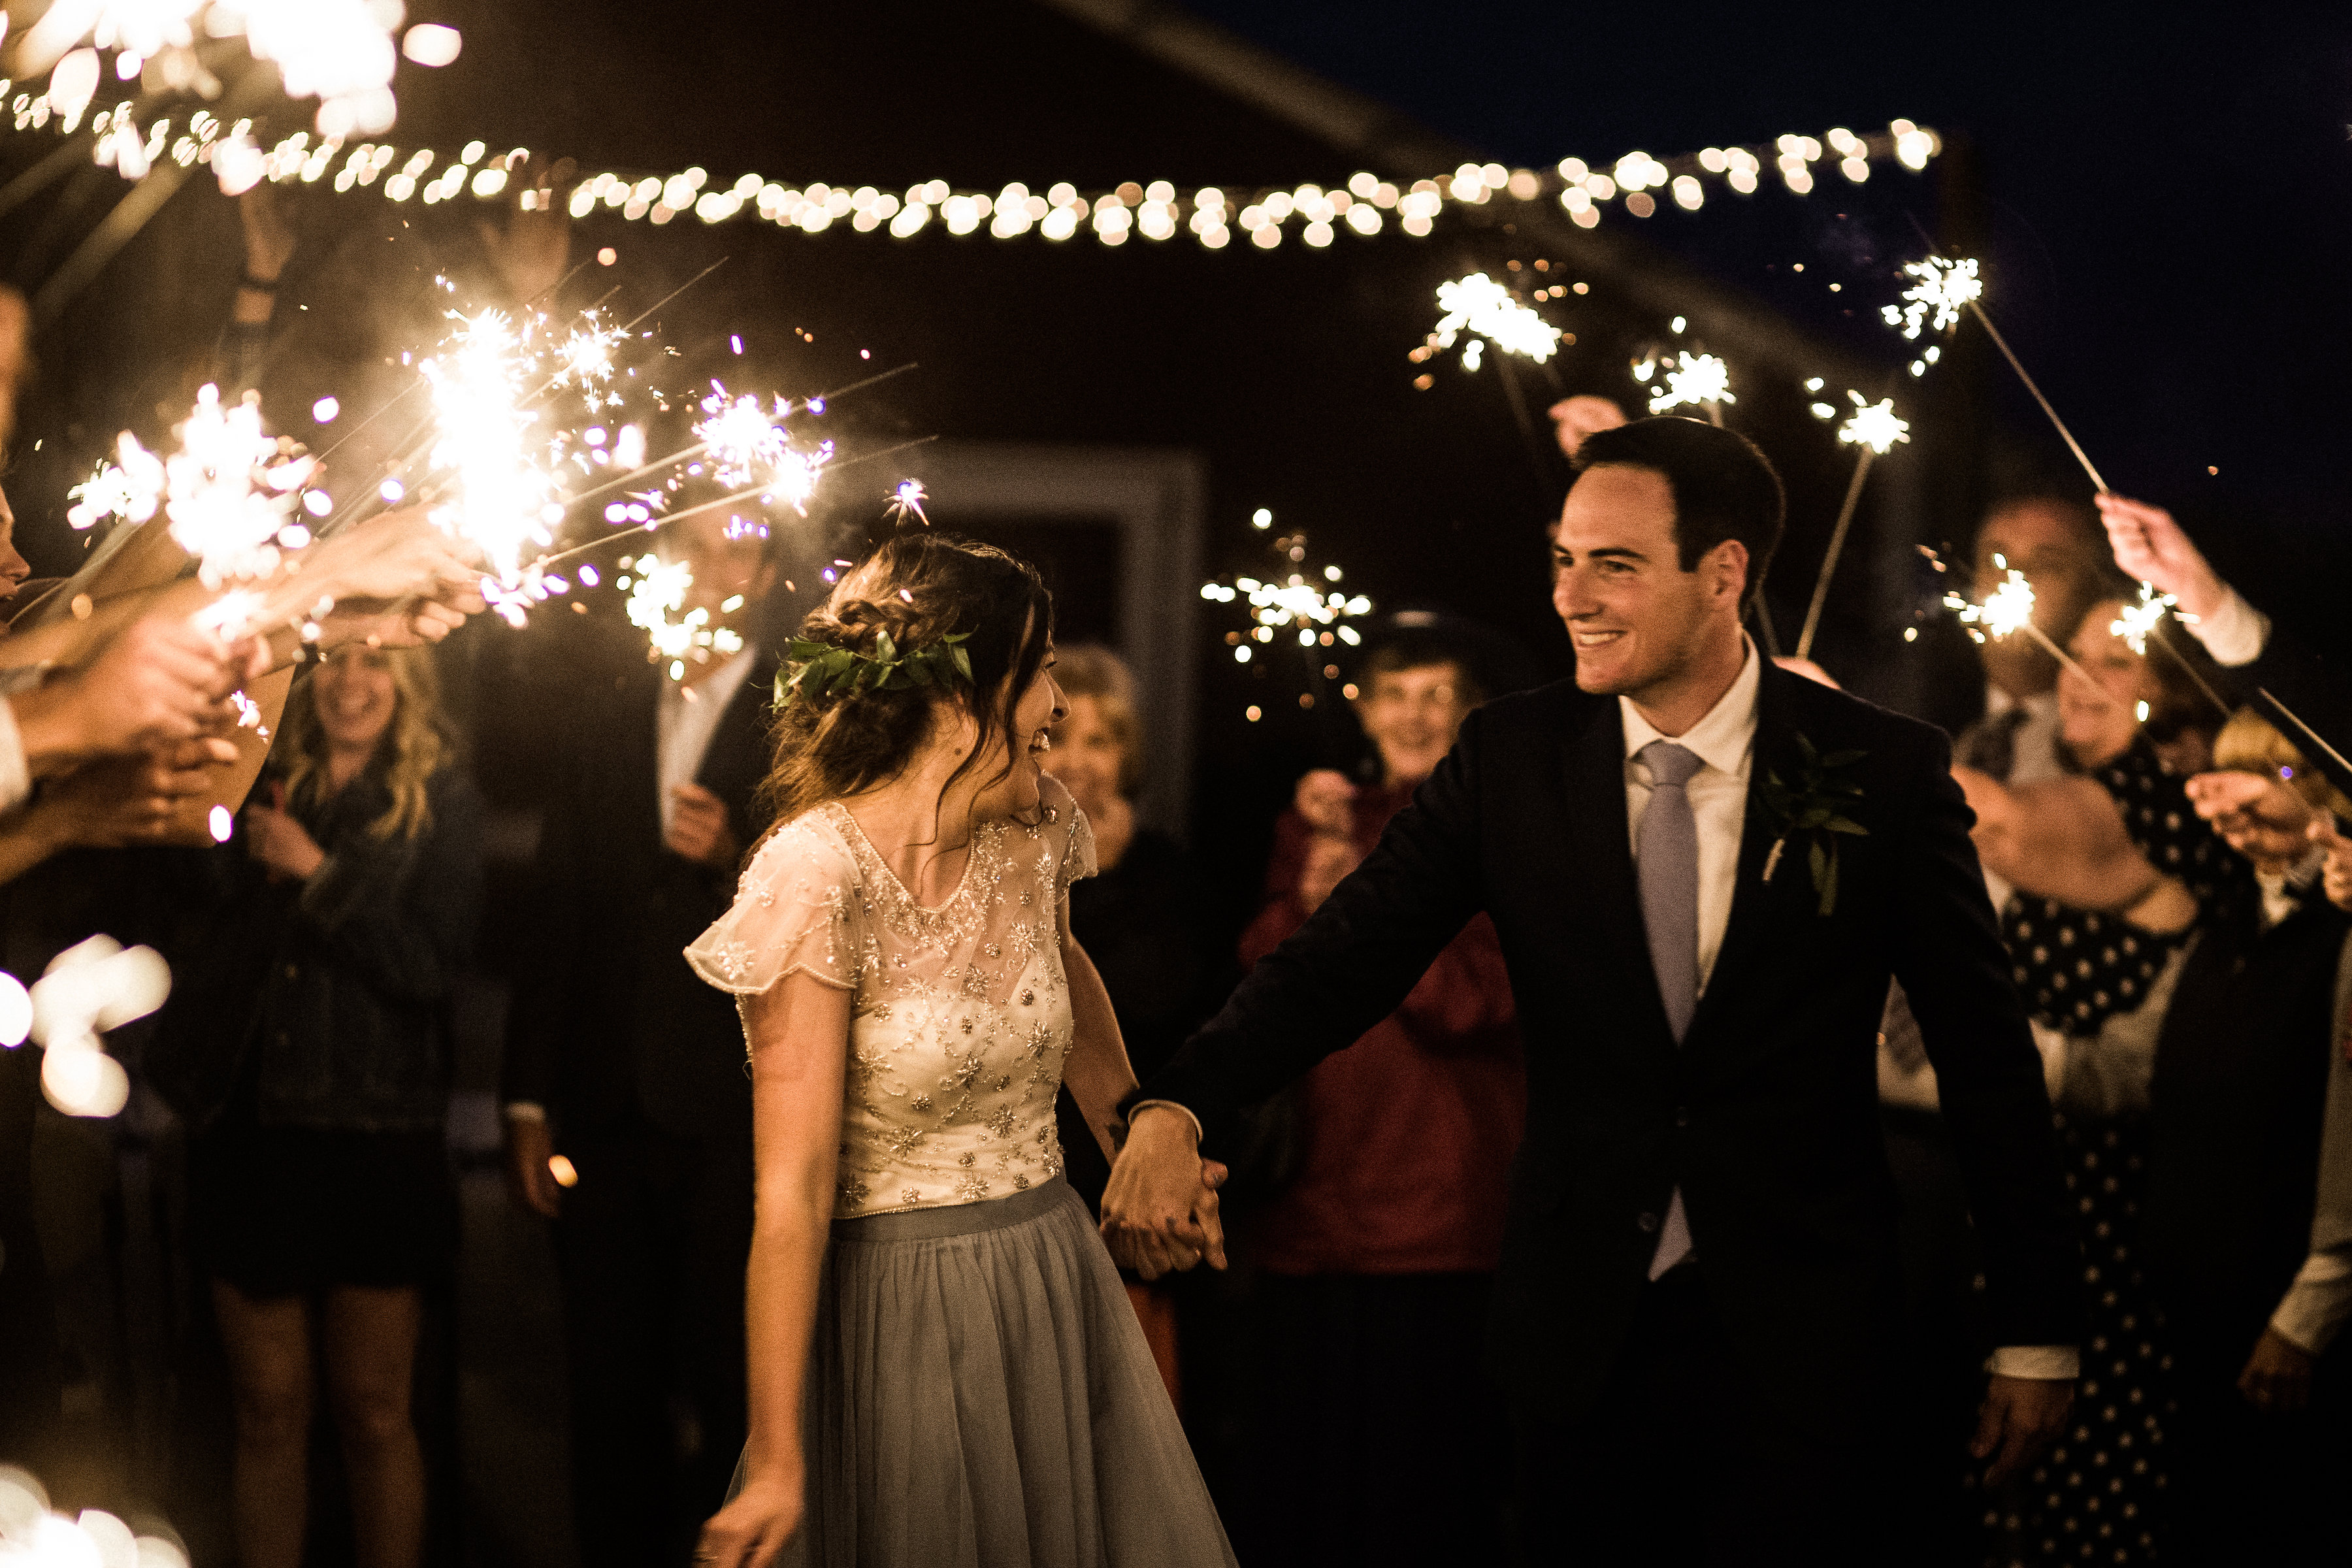 Bride in blue revelry skirt exit their wedding during a sparkler exit